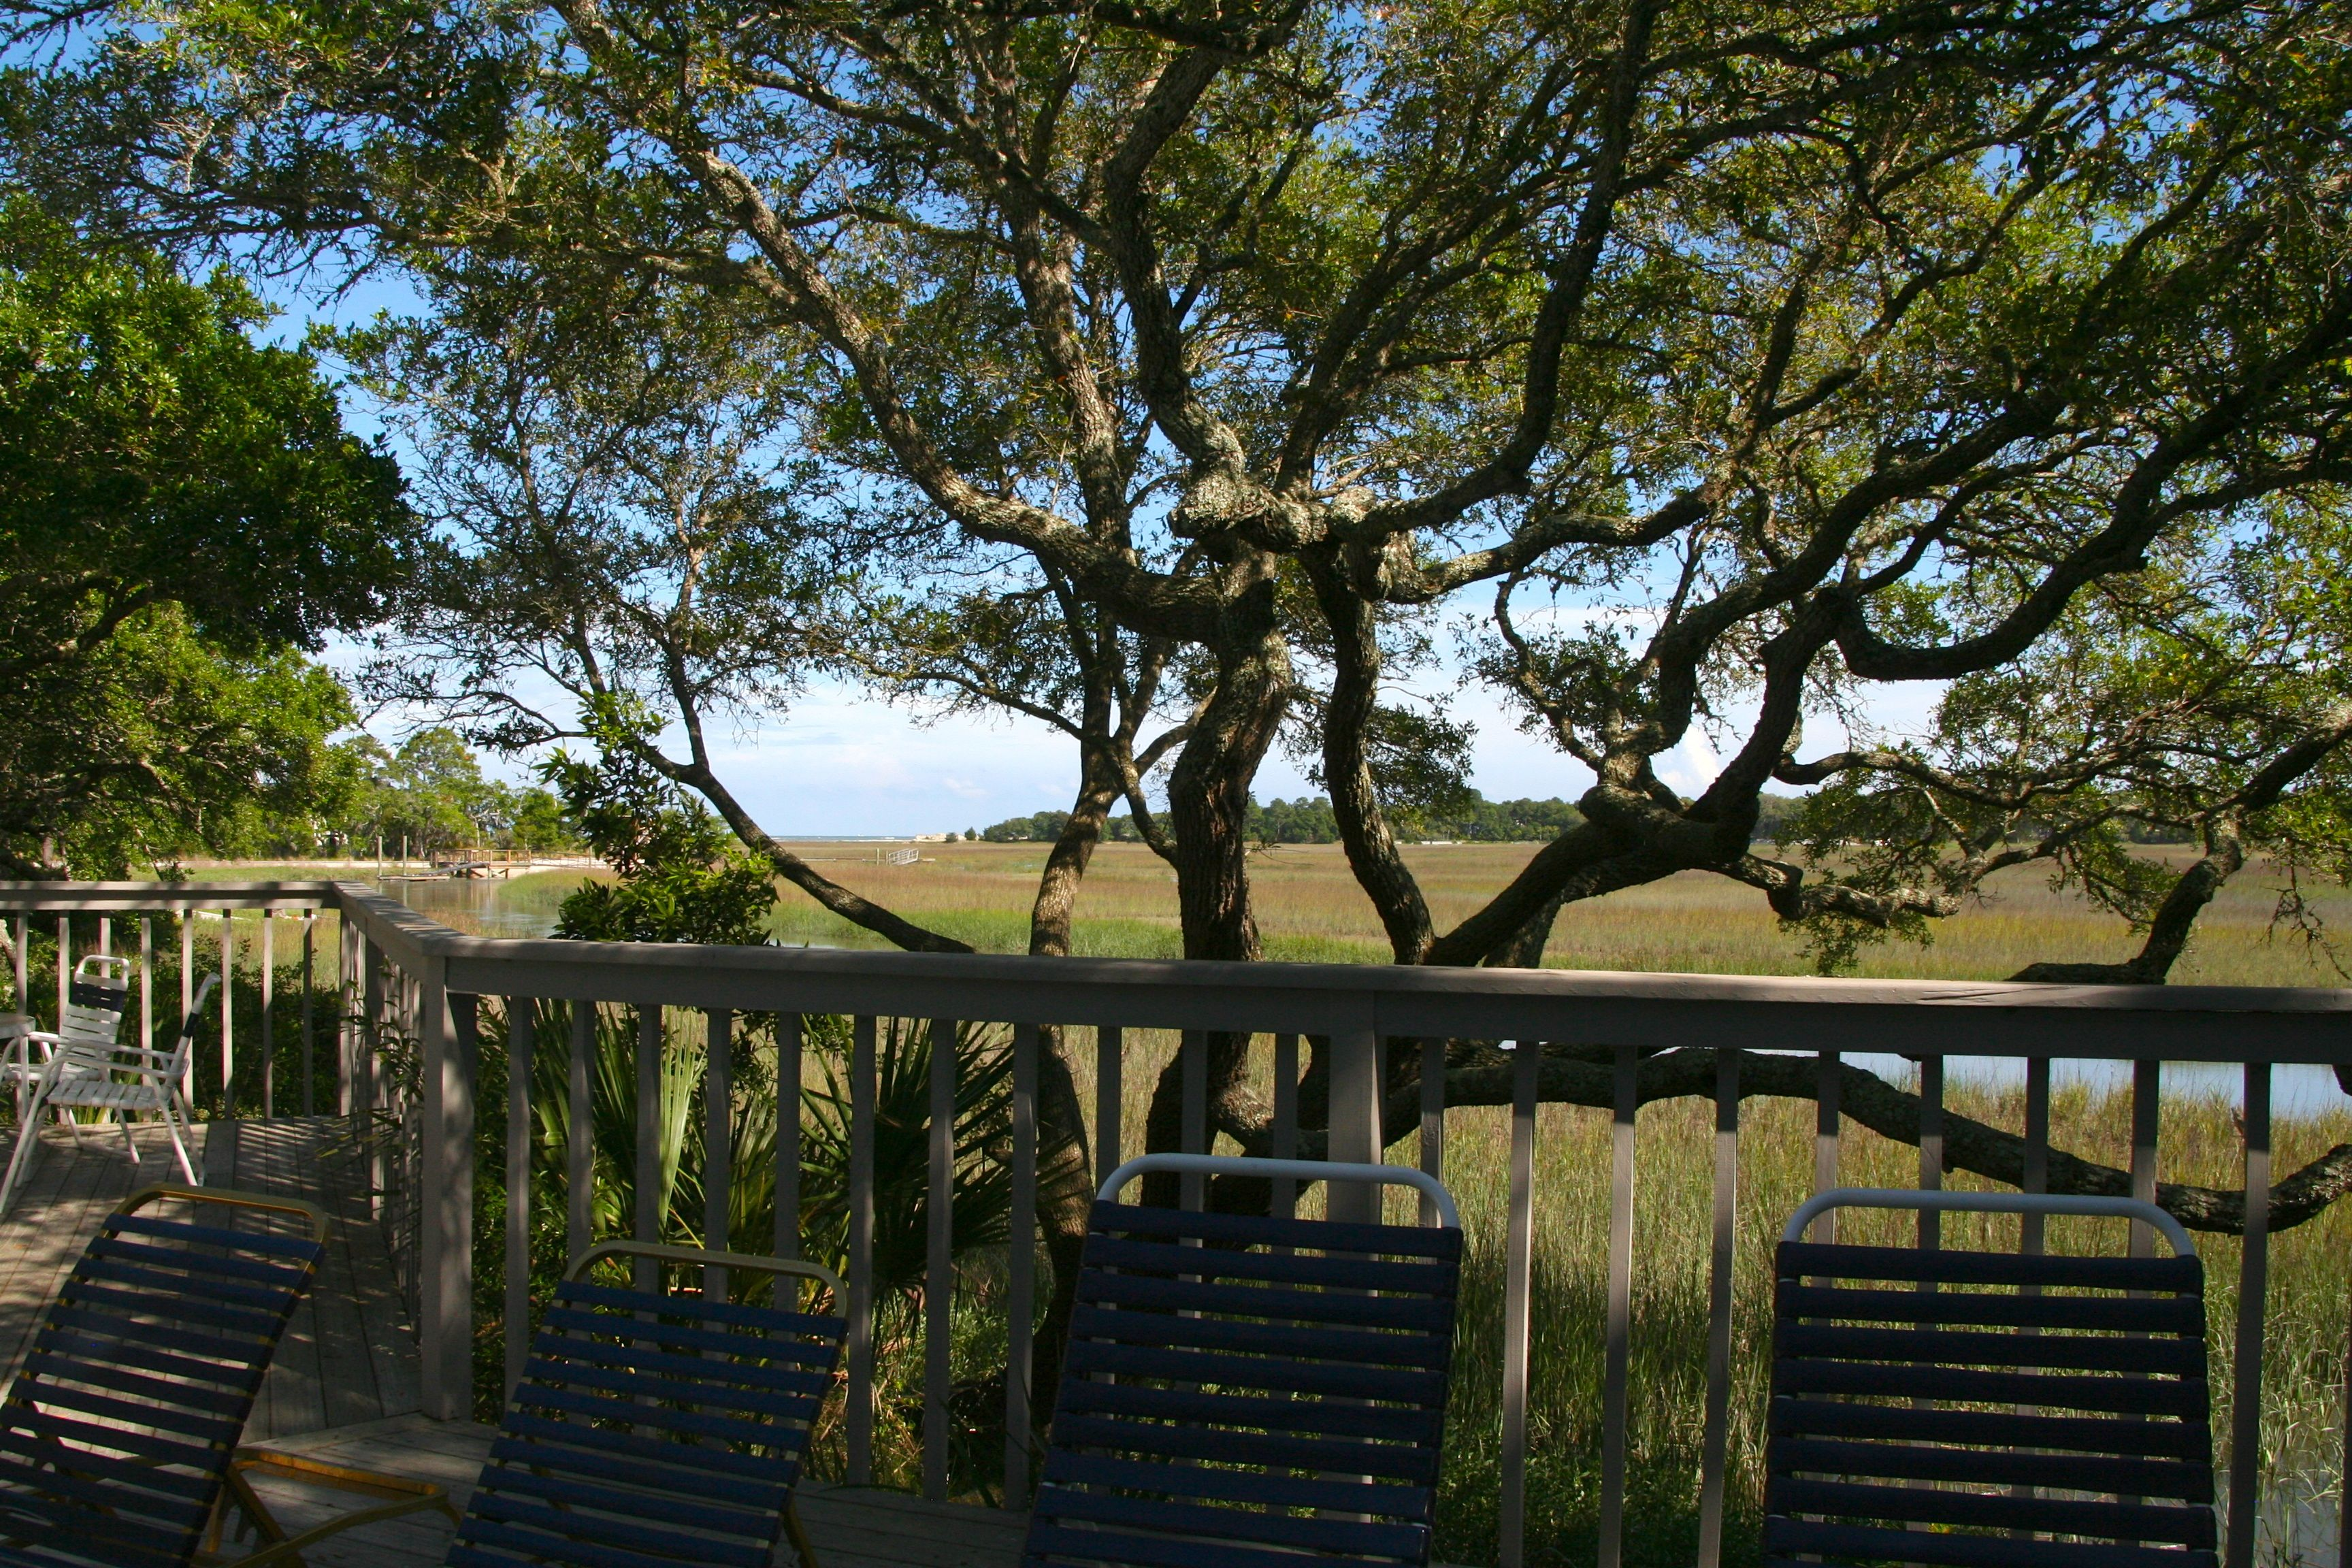 With views to the marsh and ocean beyond, you and your family will love spending time here.